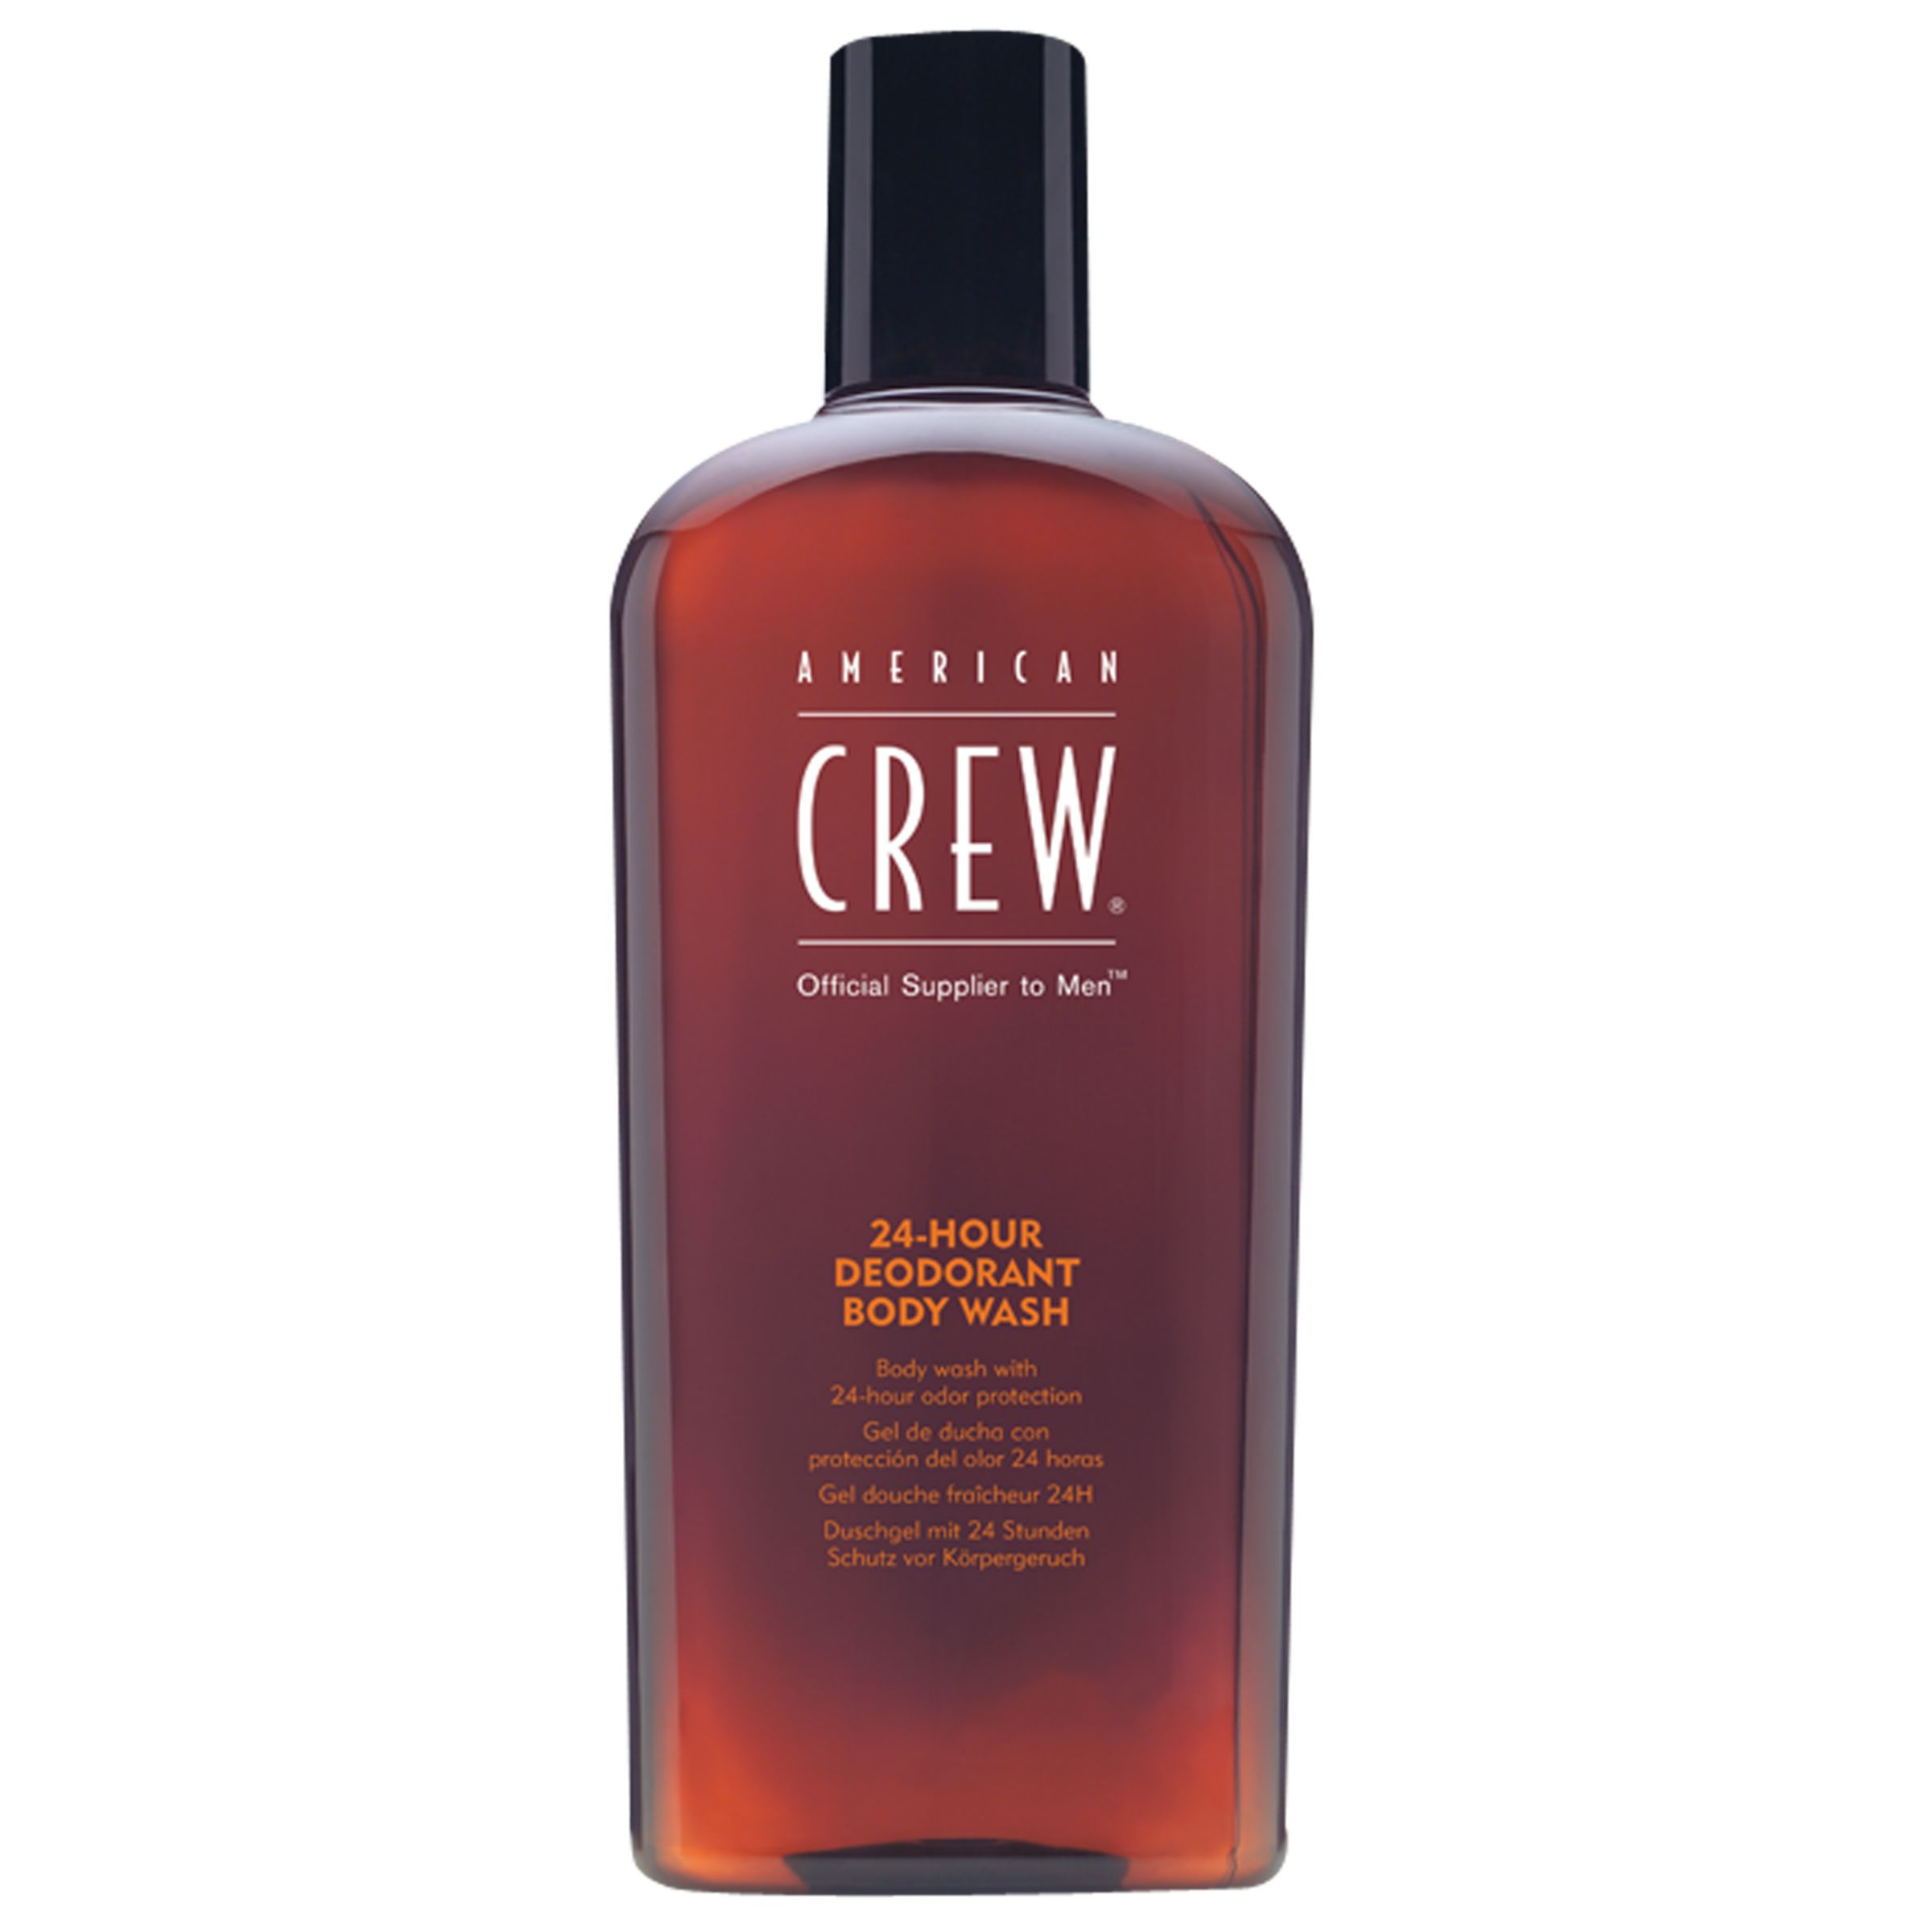 American Crew American Crew 24-Hour Deodorant Body Wash, 450ml